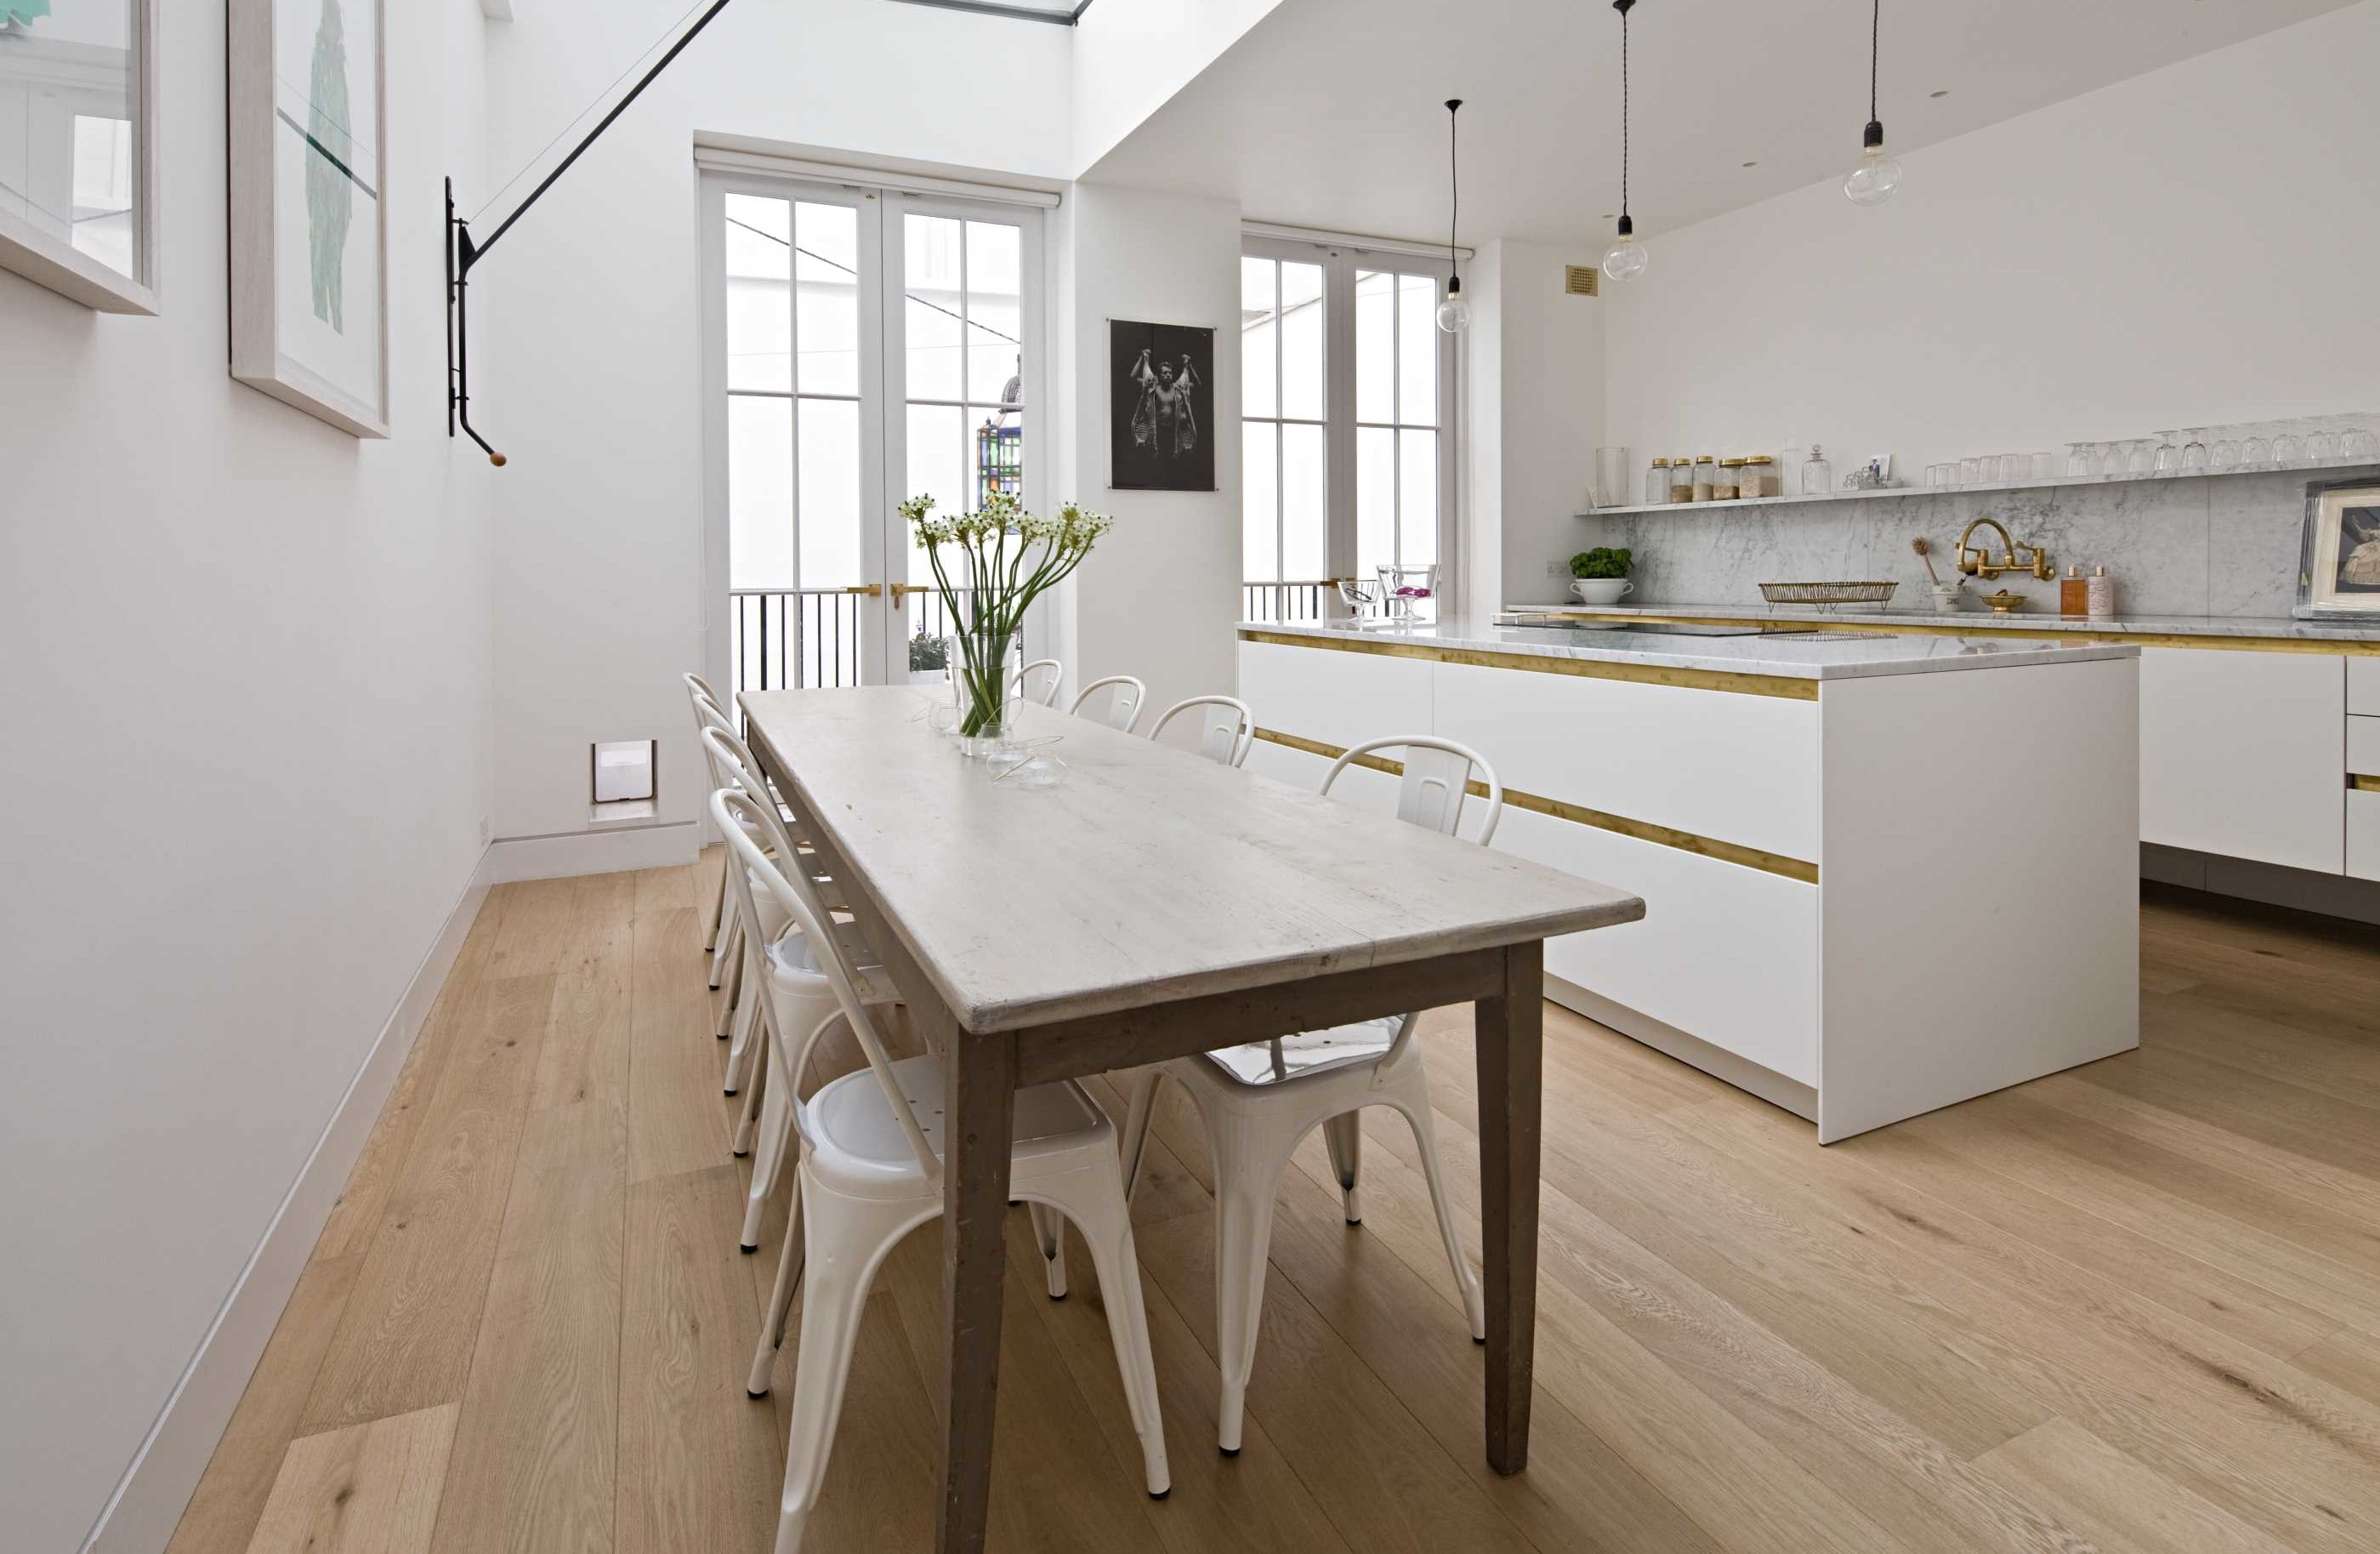 Kitchen Architecture Küchenplaner In London Homify